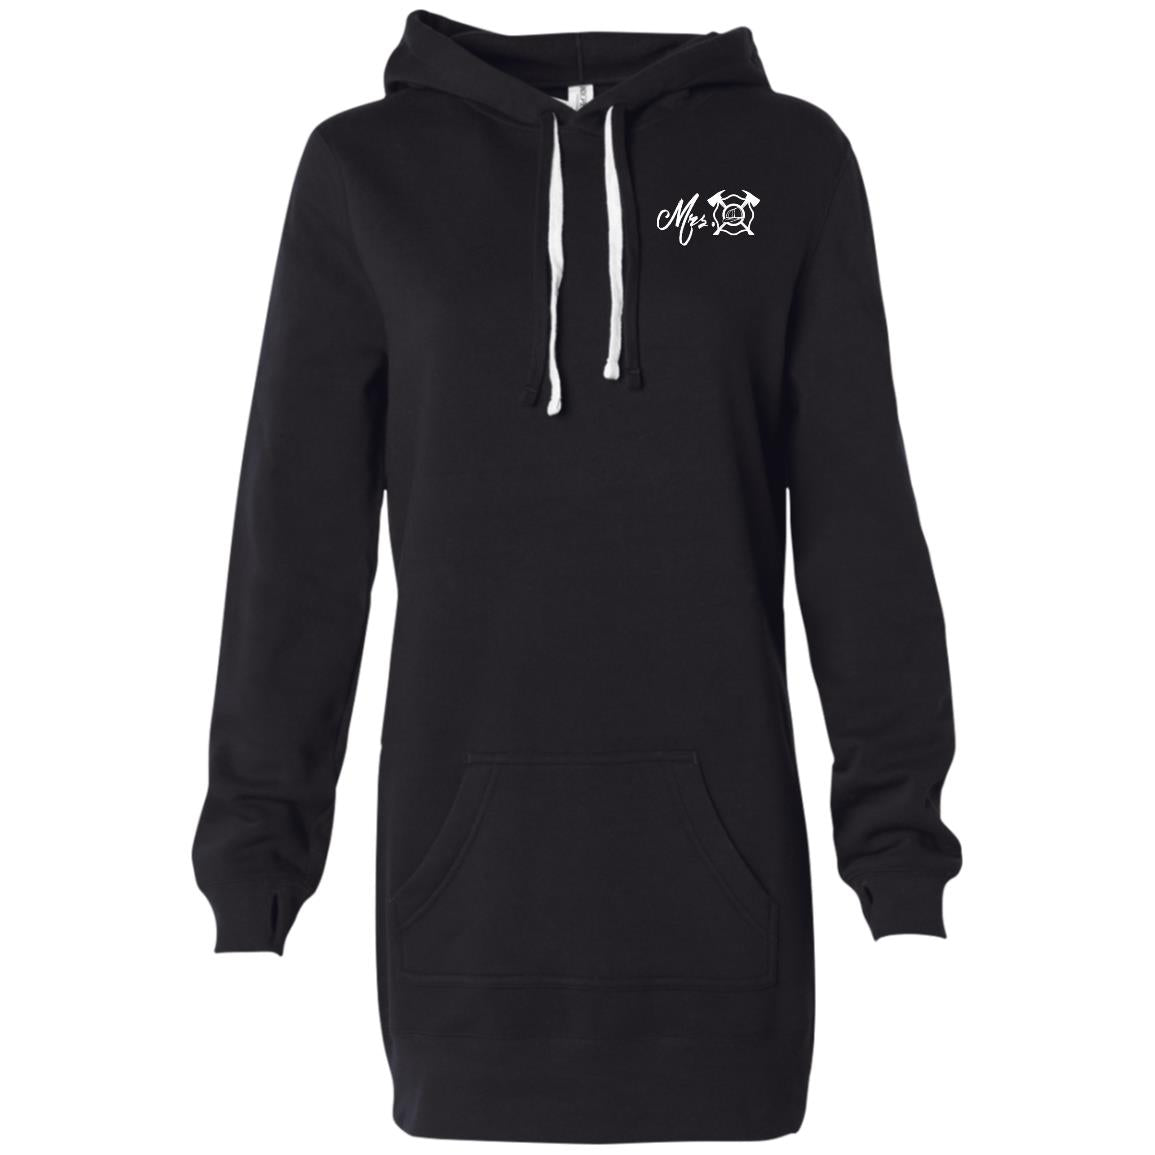 Mrs. Maltese Women's Hooded Pullover Dress